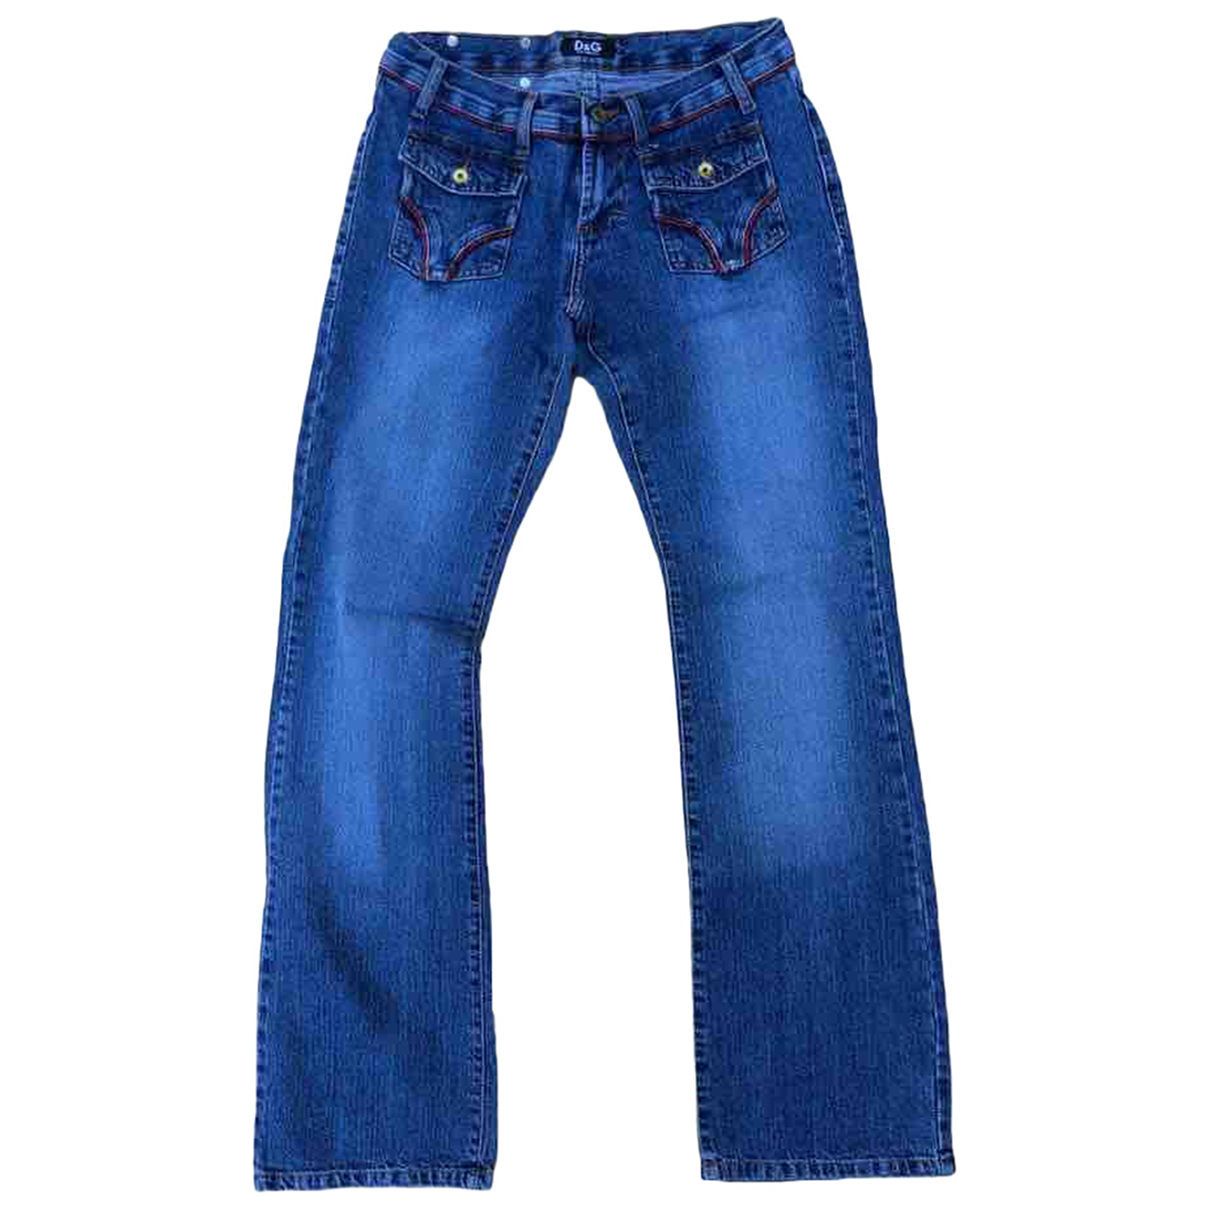 D&g \N Blue Cotton Jeans for Women 28 US